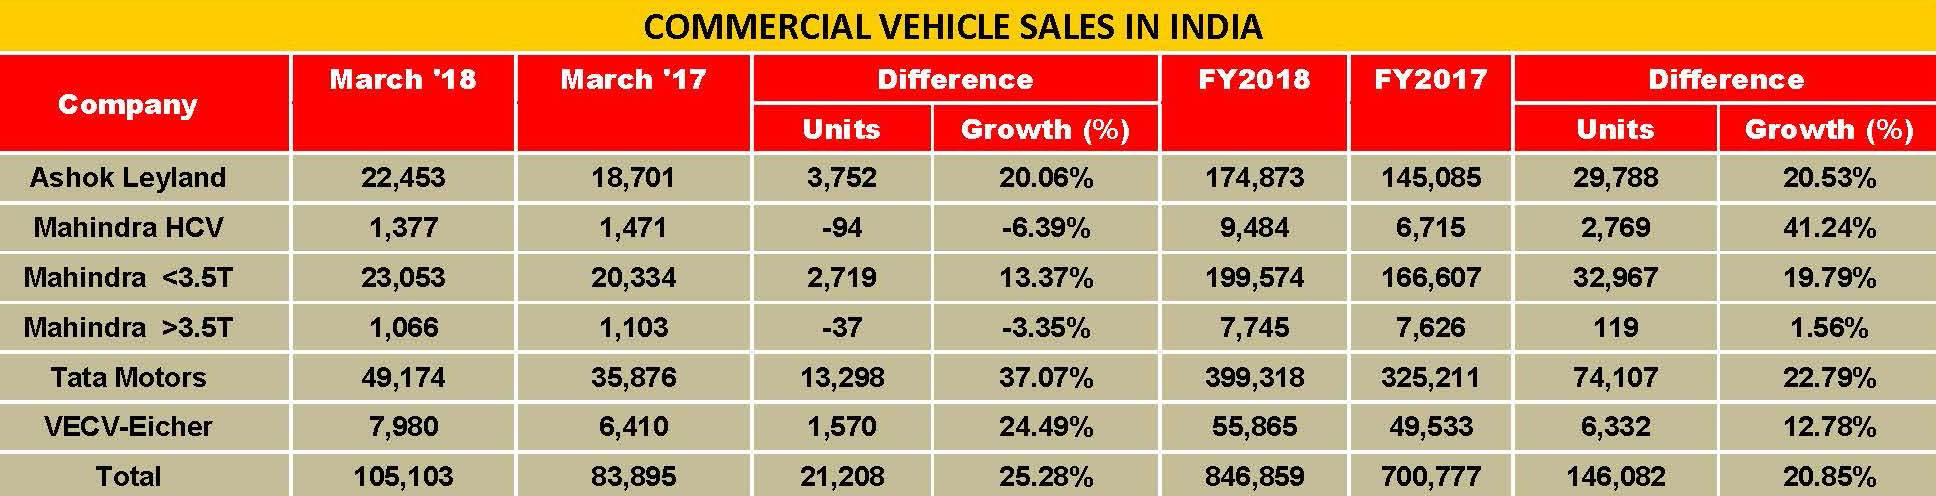 commercial-vehicle-sales-in-india